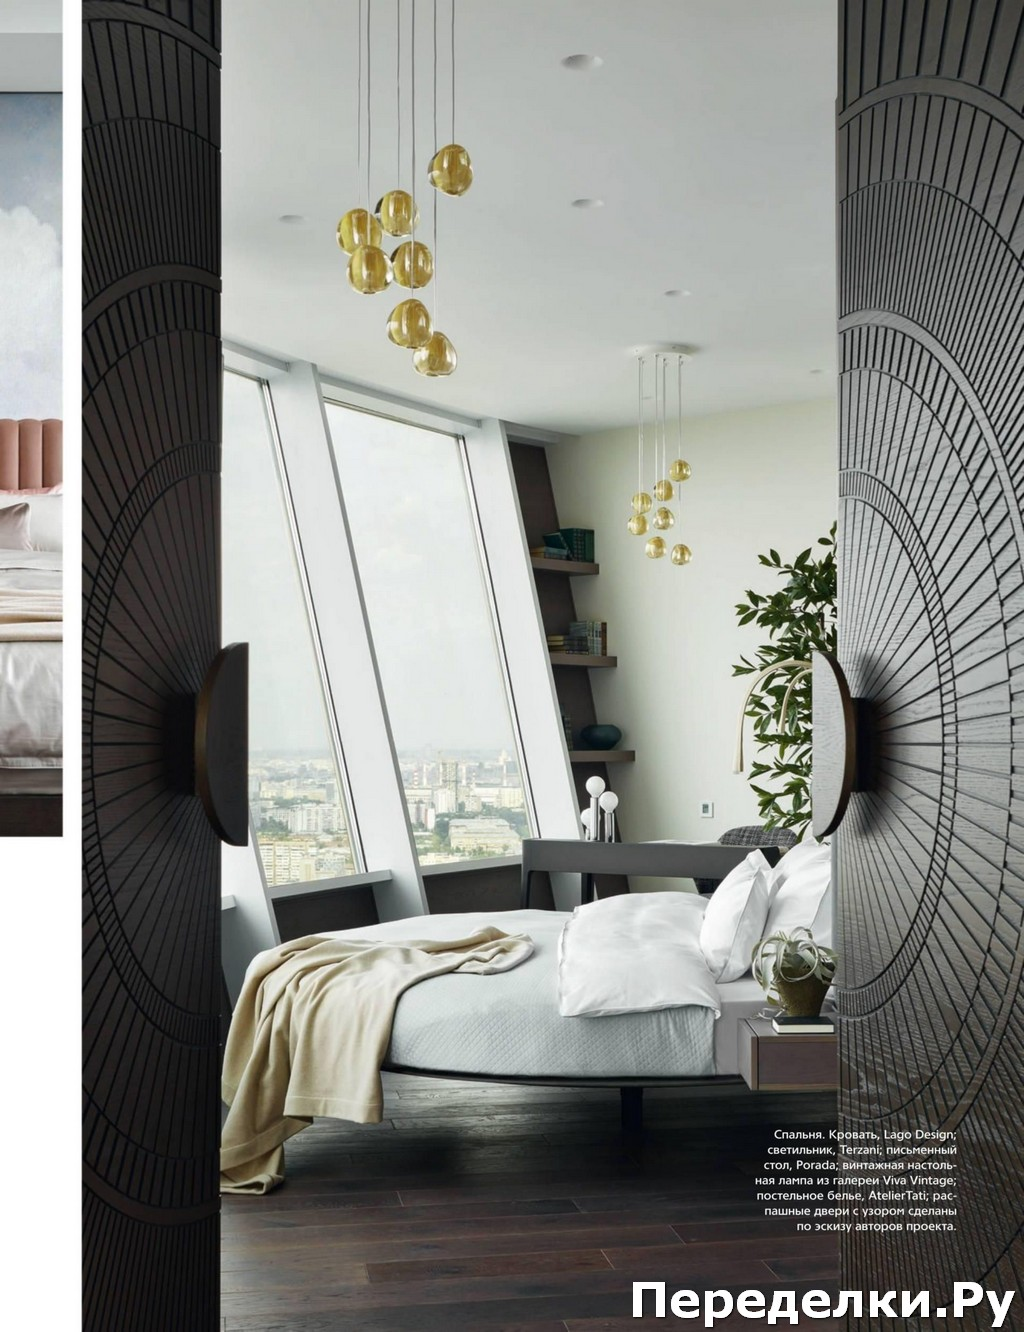 AD Architectural Digest 4 aprel 2020 166